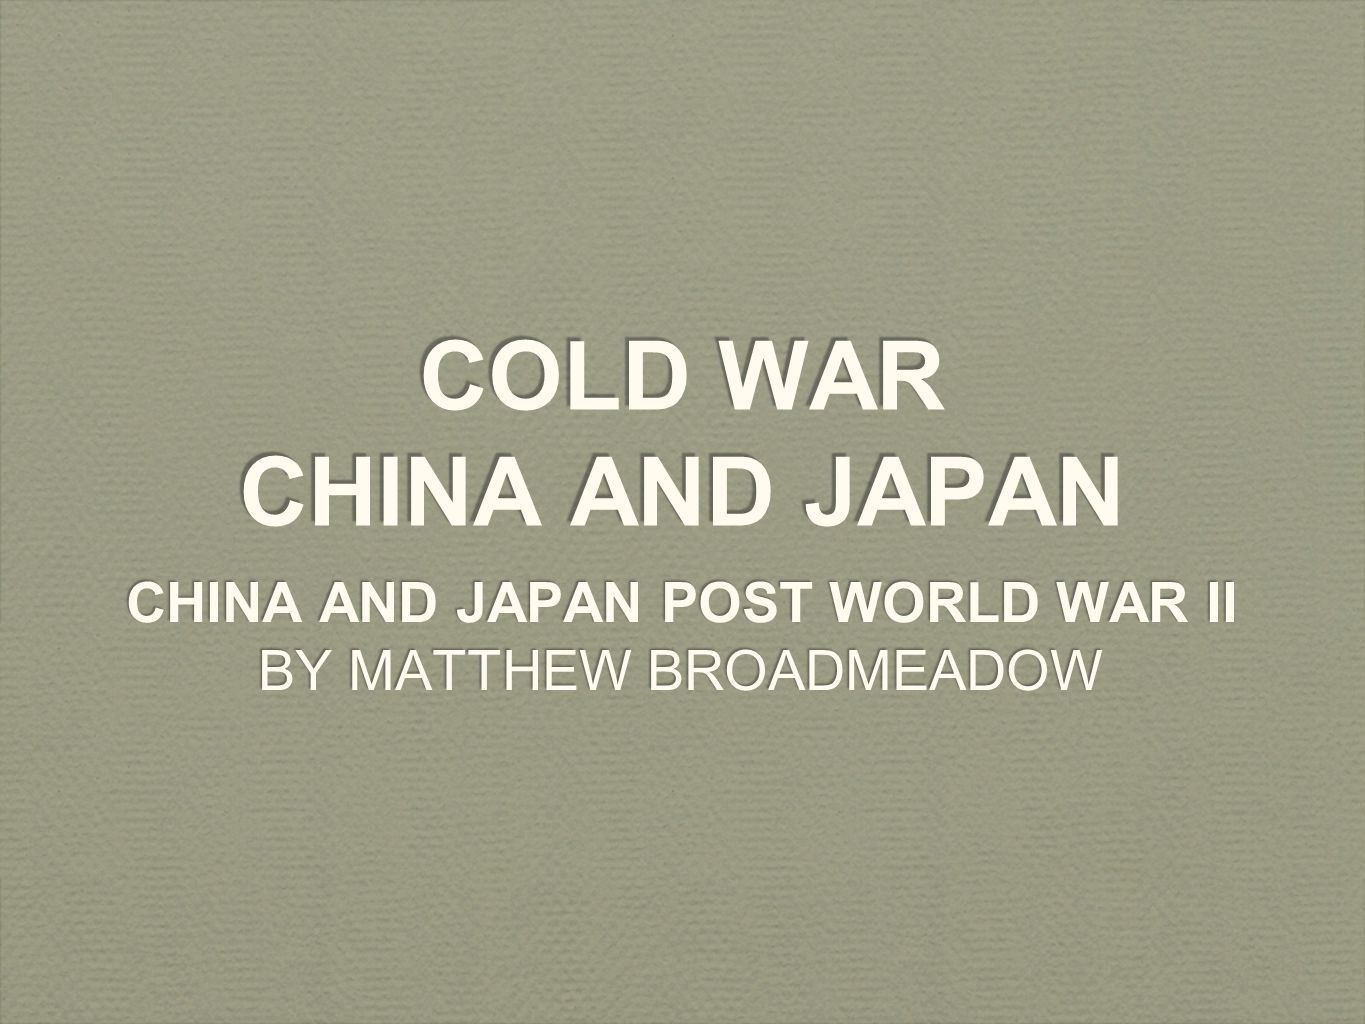 """cold war chinese The cold war limited resources of china leaned towards a defensive policy, well before any plan for a """"green water navy"""", let alone a """"blue water"""" one the best naval defensive ways had been submarines and missile or torpedo boats."""